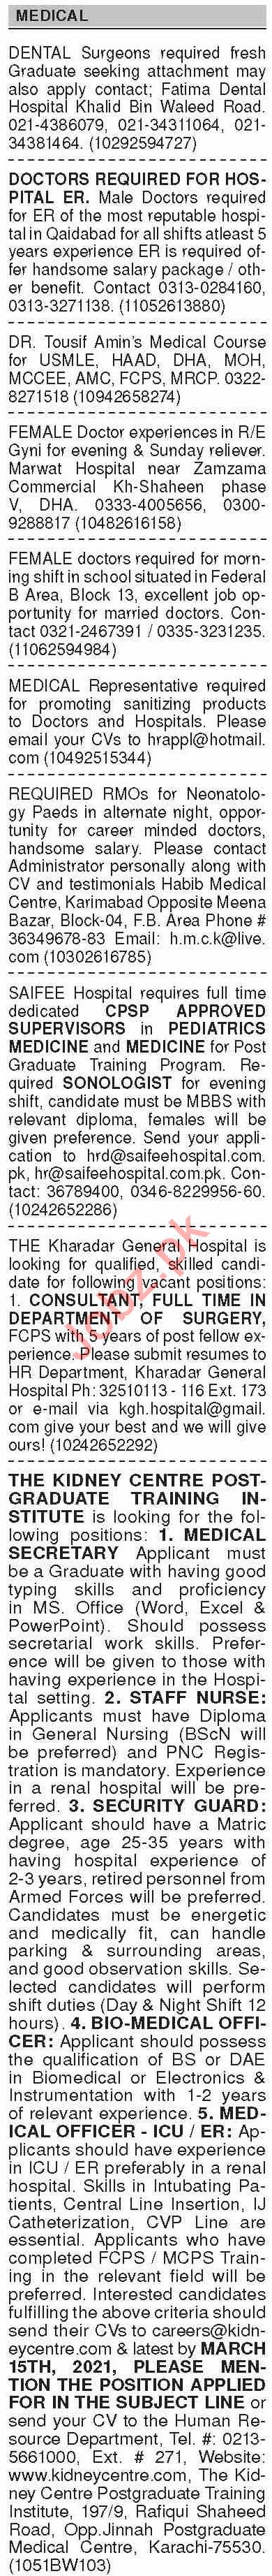 Dawn Sunday Classified Ads 28 Feb 2021 for Medical Staff